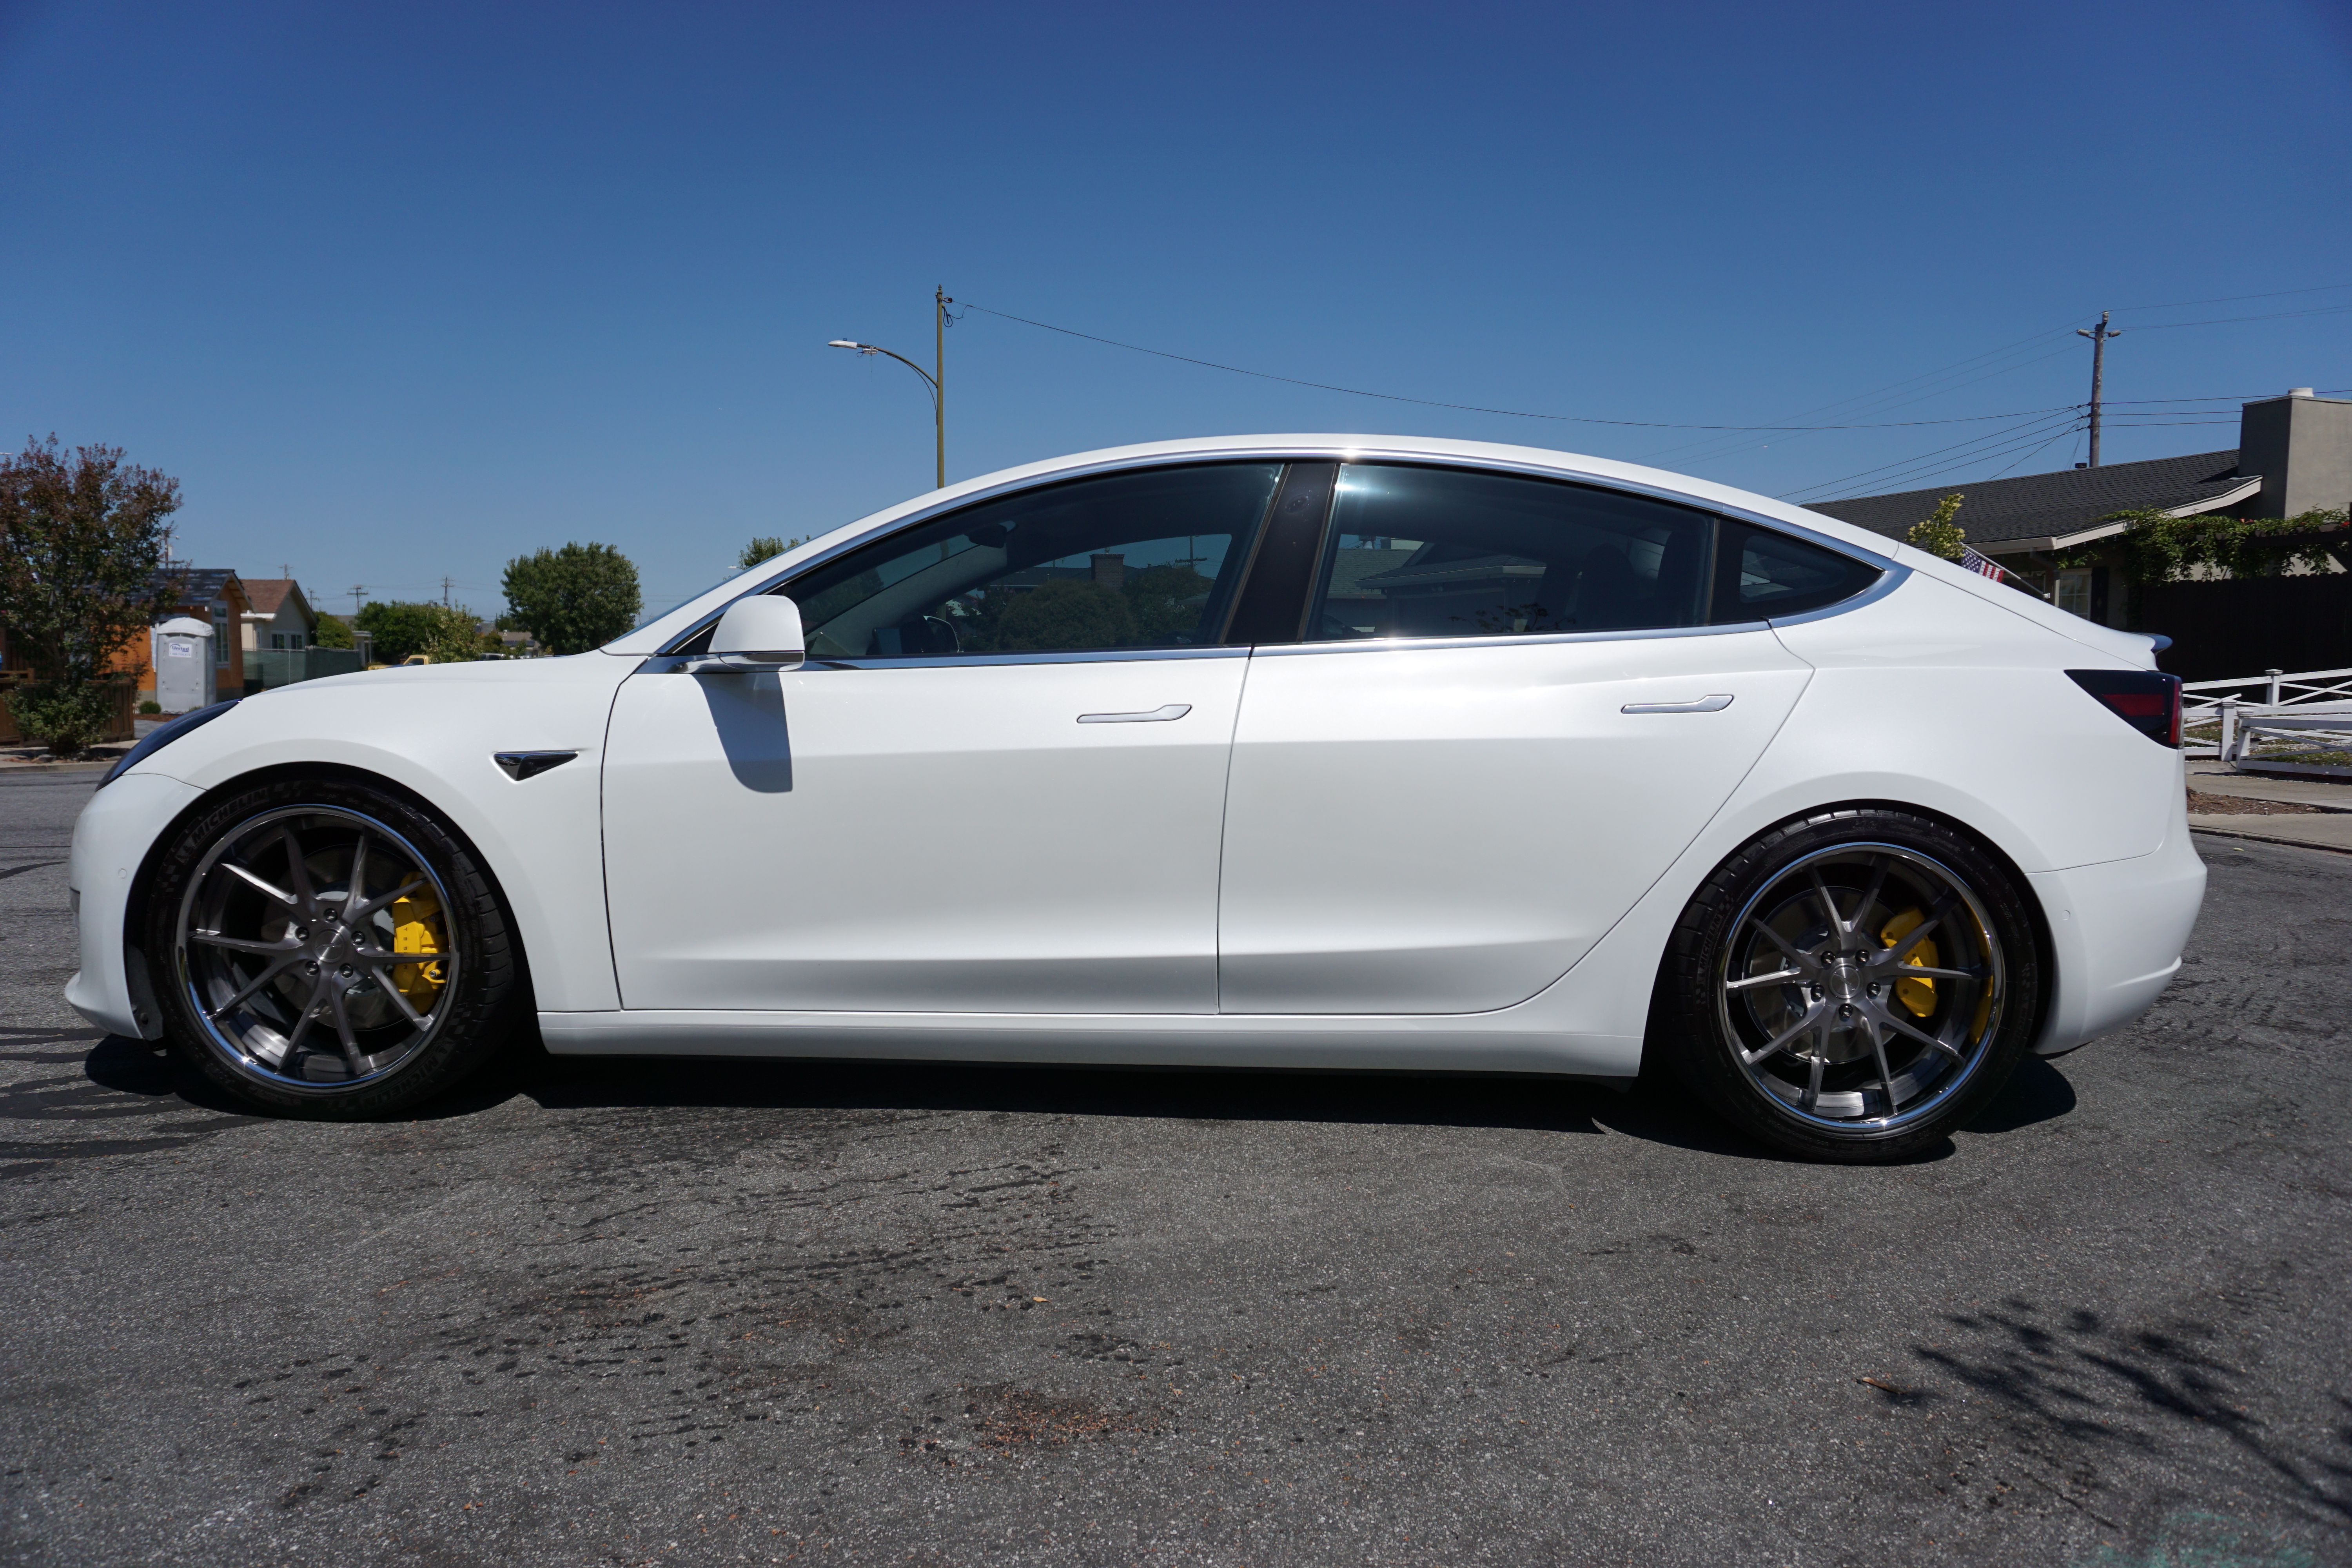 Pearly White Monday Auto Salon Workspaint Correction Ceramic Coating Sf Bay Area Ceramic Coating Clean Tires Auto